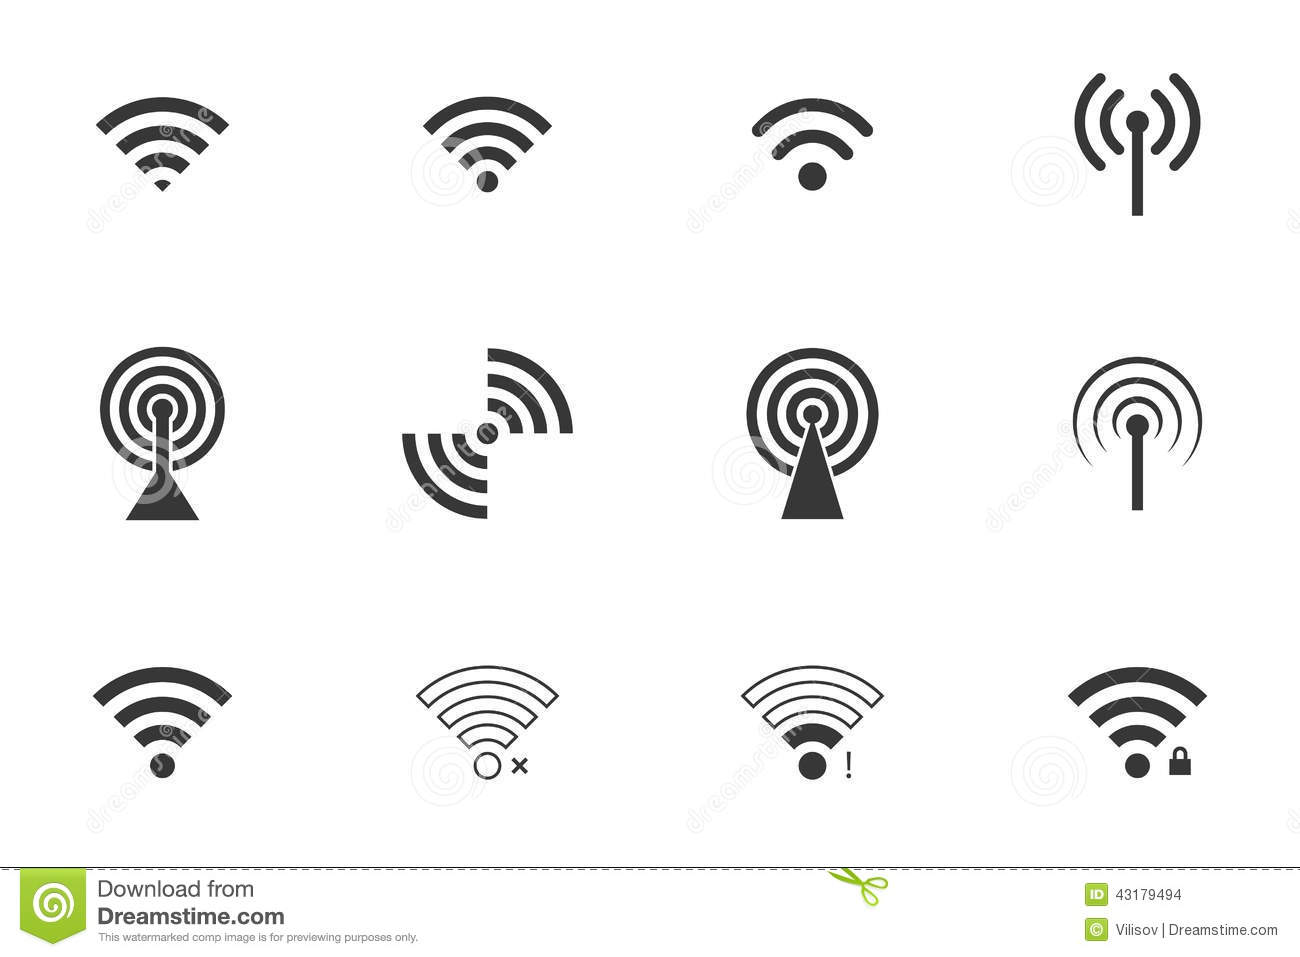 Wifi Symboler Vektor Illustrationer Illustration Av